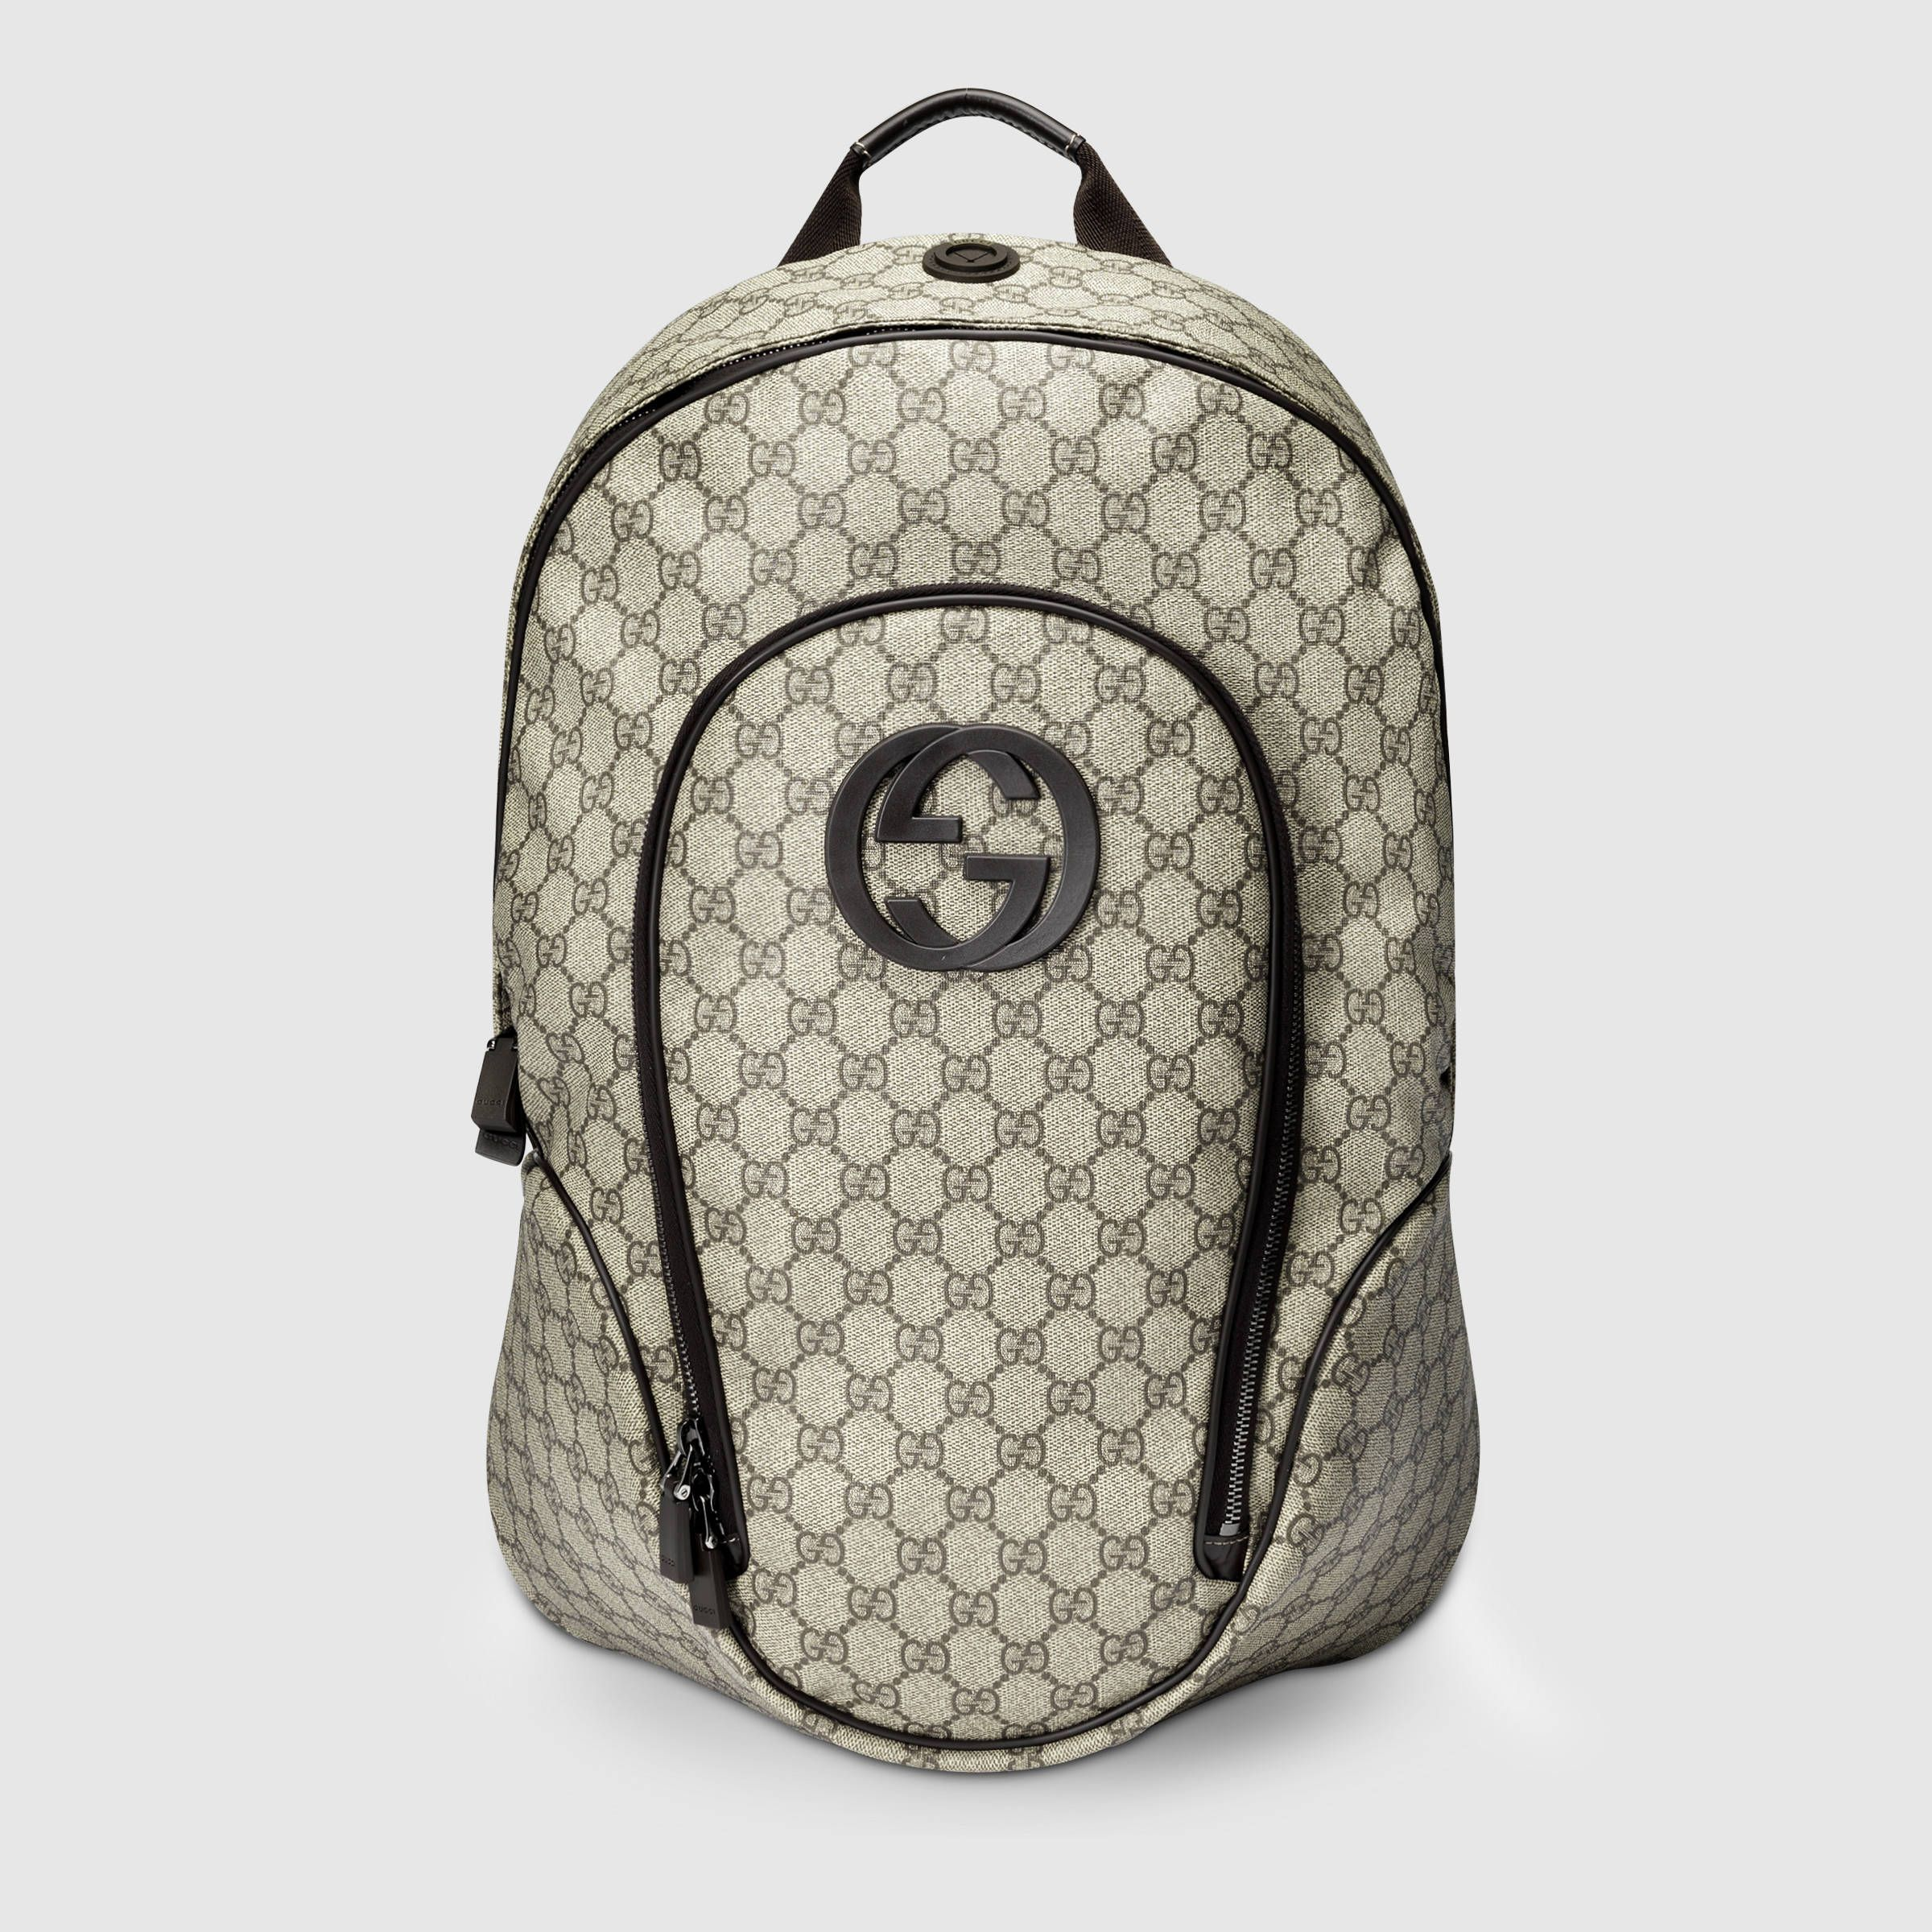 3bc400acbbe576 Gucci Men - GG Supreme interlocking G backpack - 223705KGDAX8588 ...